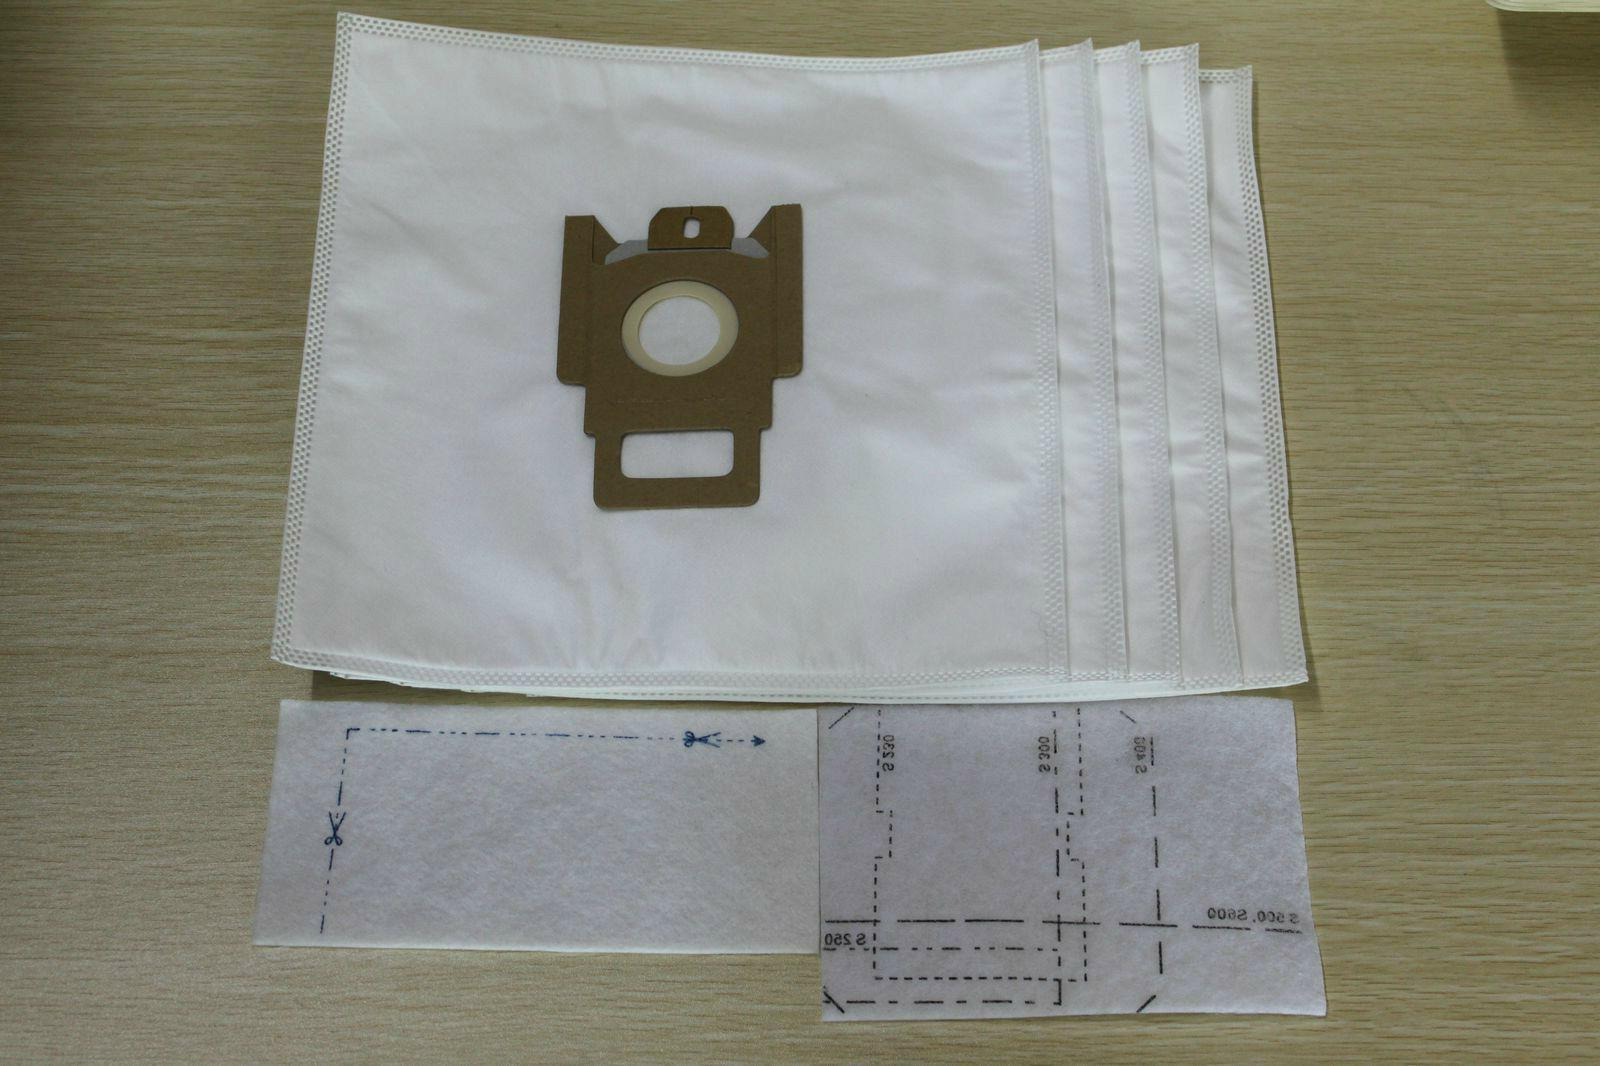 bags filter designed fit miele